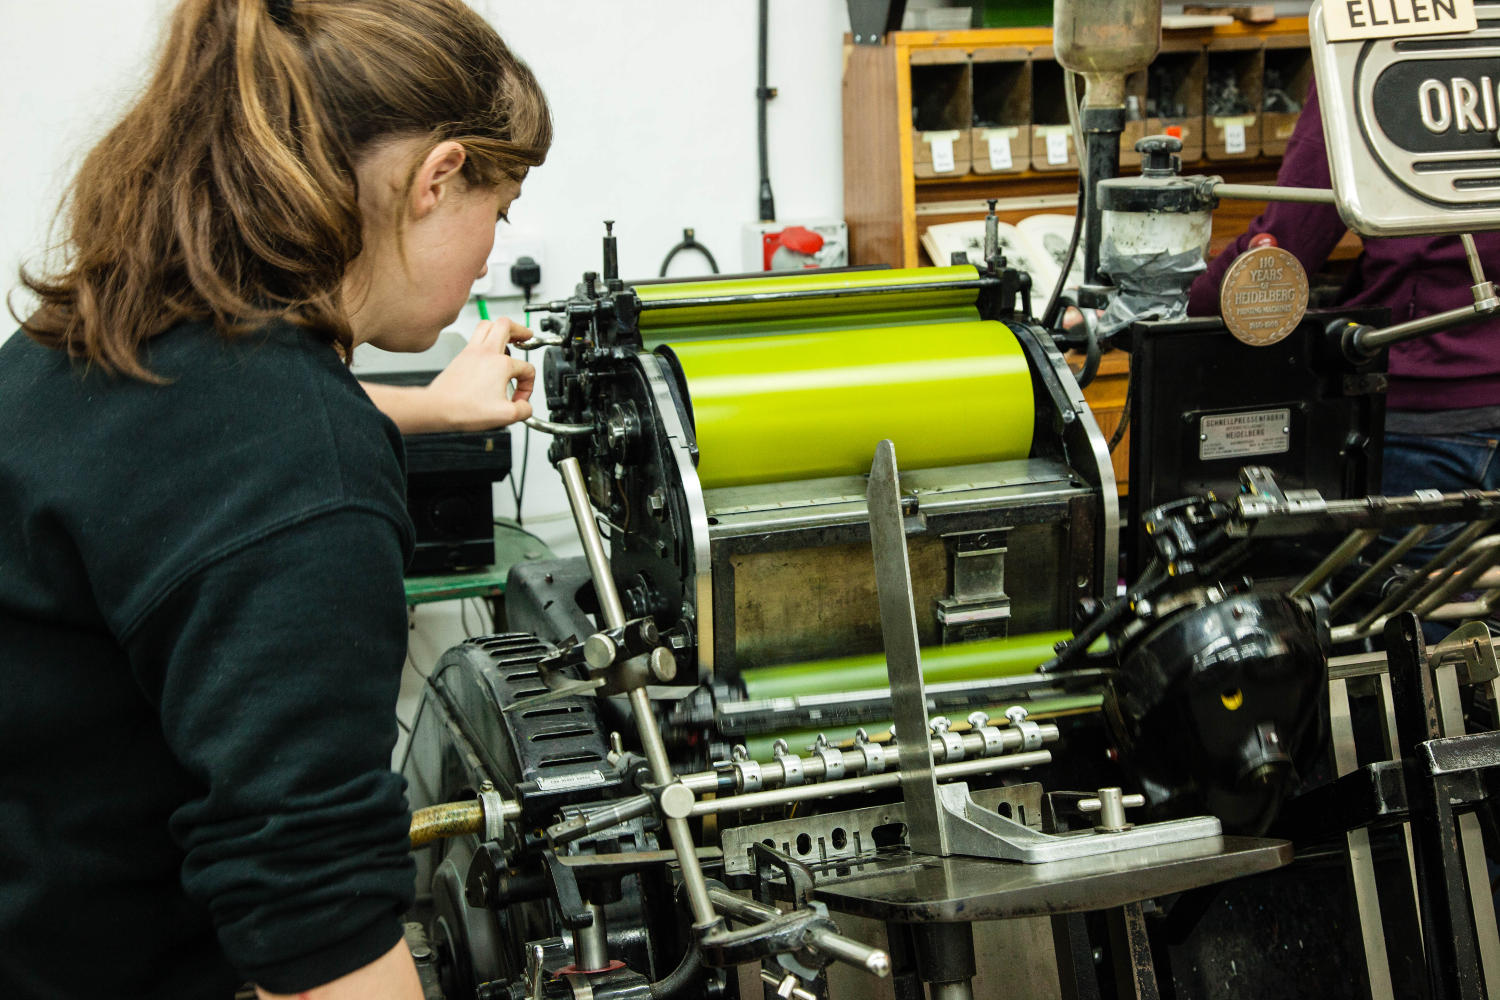 Ellen running a bright green press